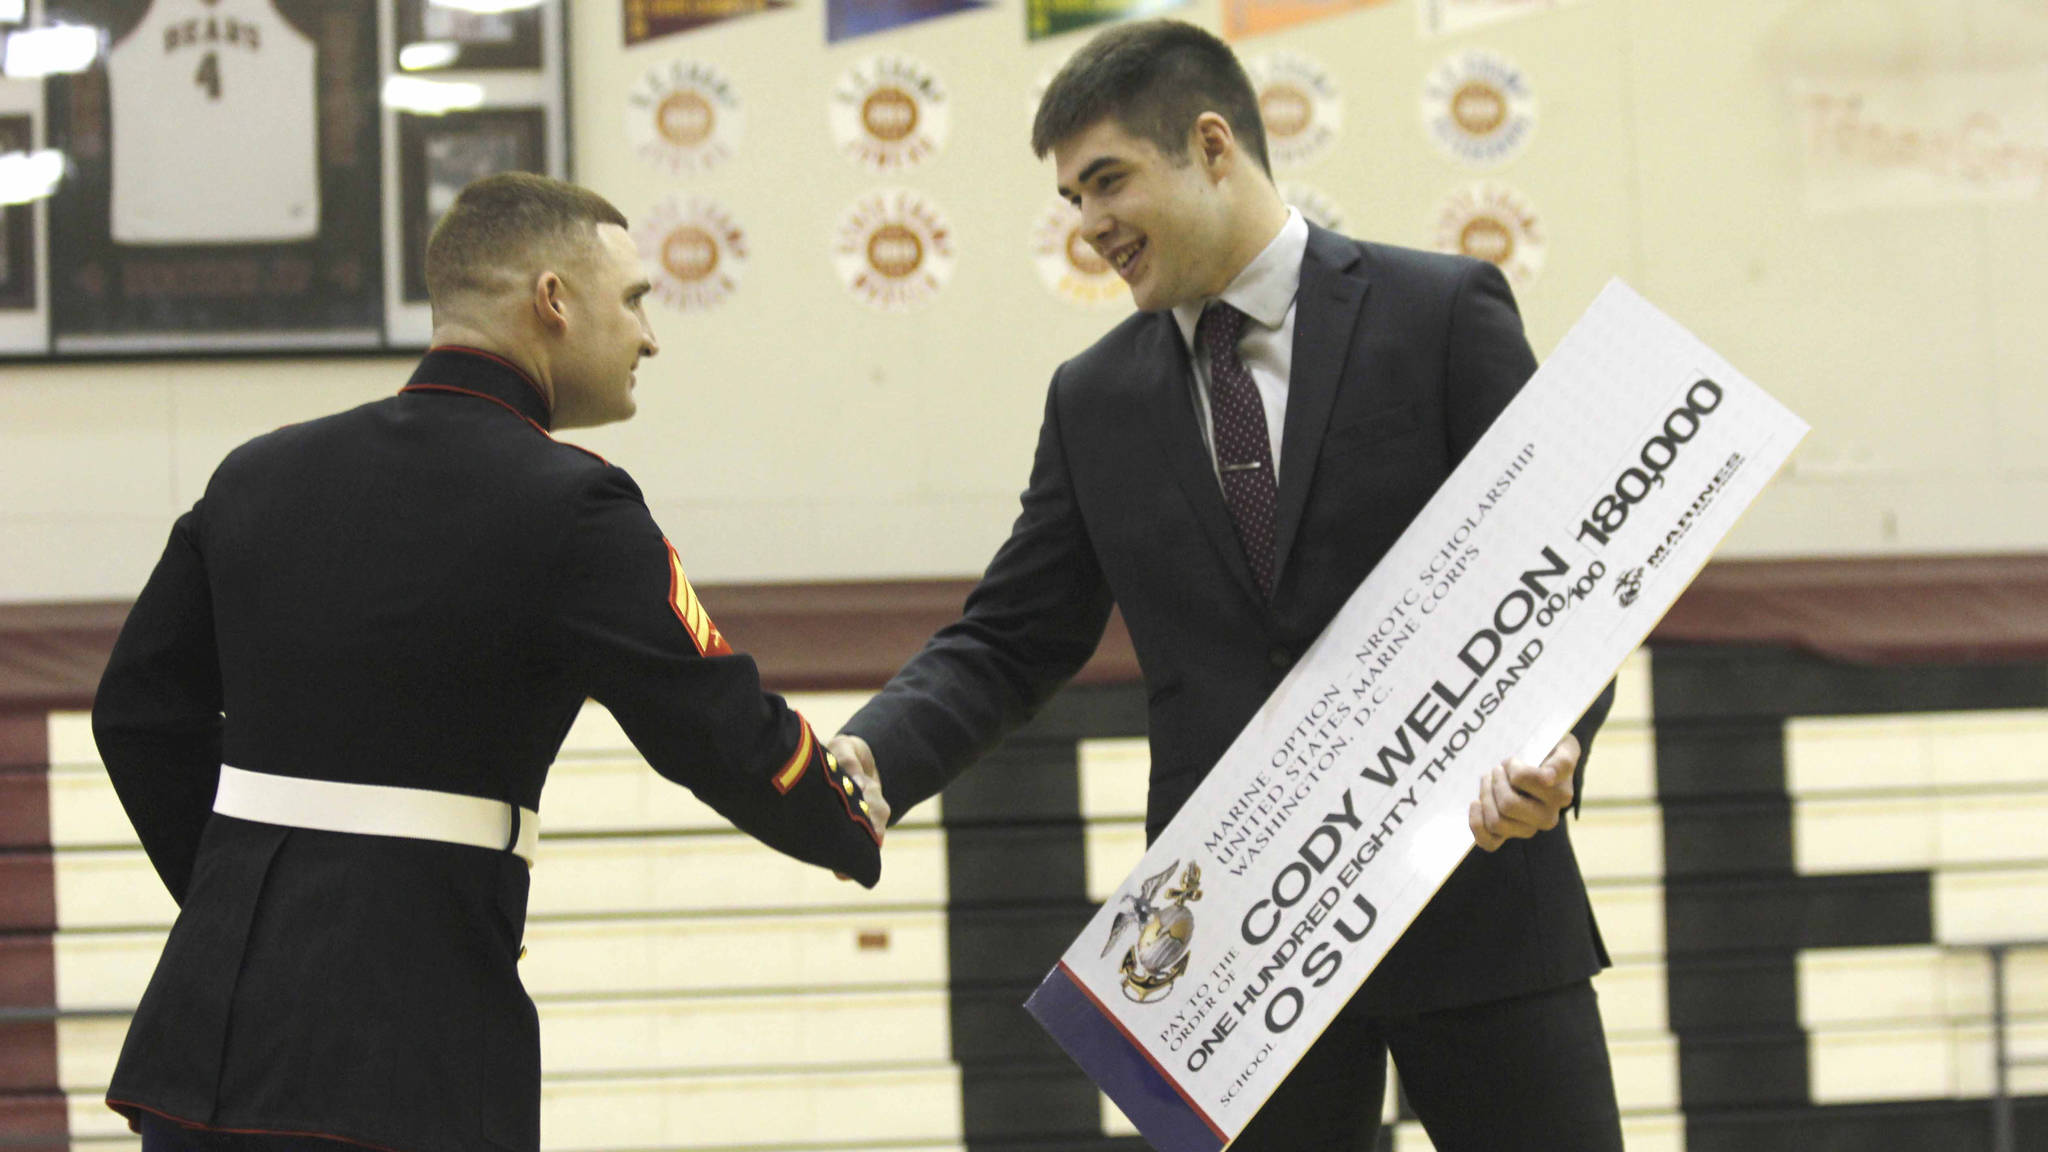 US Marine Sgt. James White congratulates Cody Weldon, 18, with the Naval Reserve Officer Training Corps scholarship Tuesday, April 18, at Juneau-Douglas High School. Weldon was one of two Alaskan high school students to be given the scholarship. (Photo by Alex McCarthy)